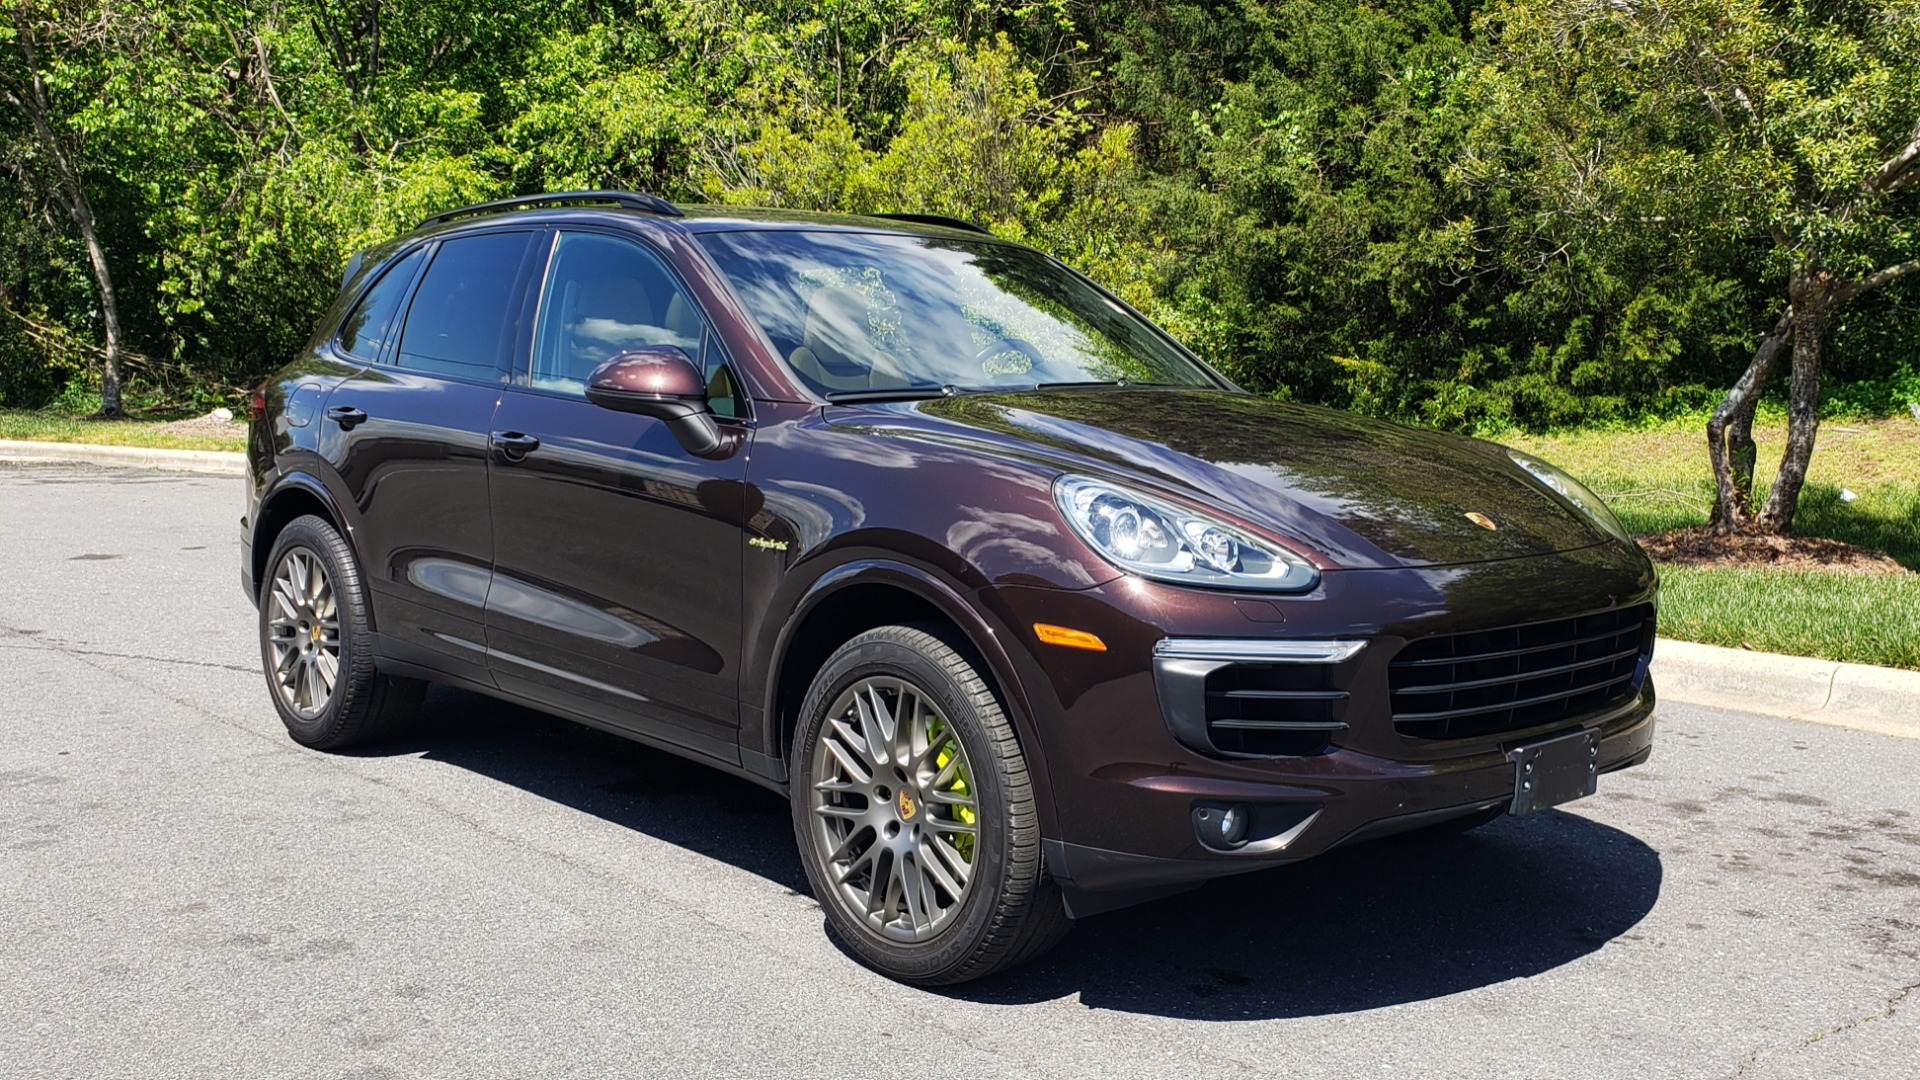 Used 2017 Porsche CAYENNE S E-HYBRID PLATINUM EDITION for sale Sold at Formula Imports in Charlotte NC 28227 4